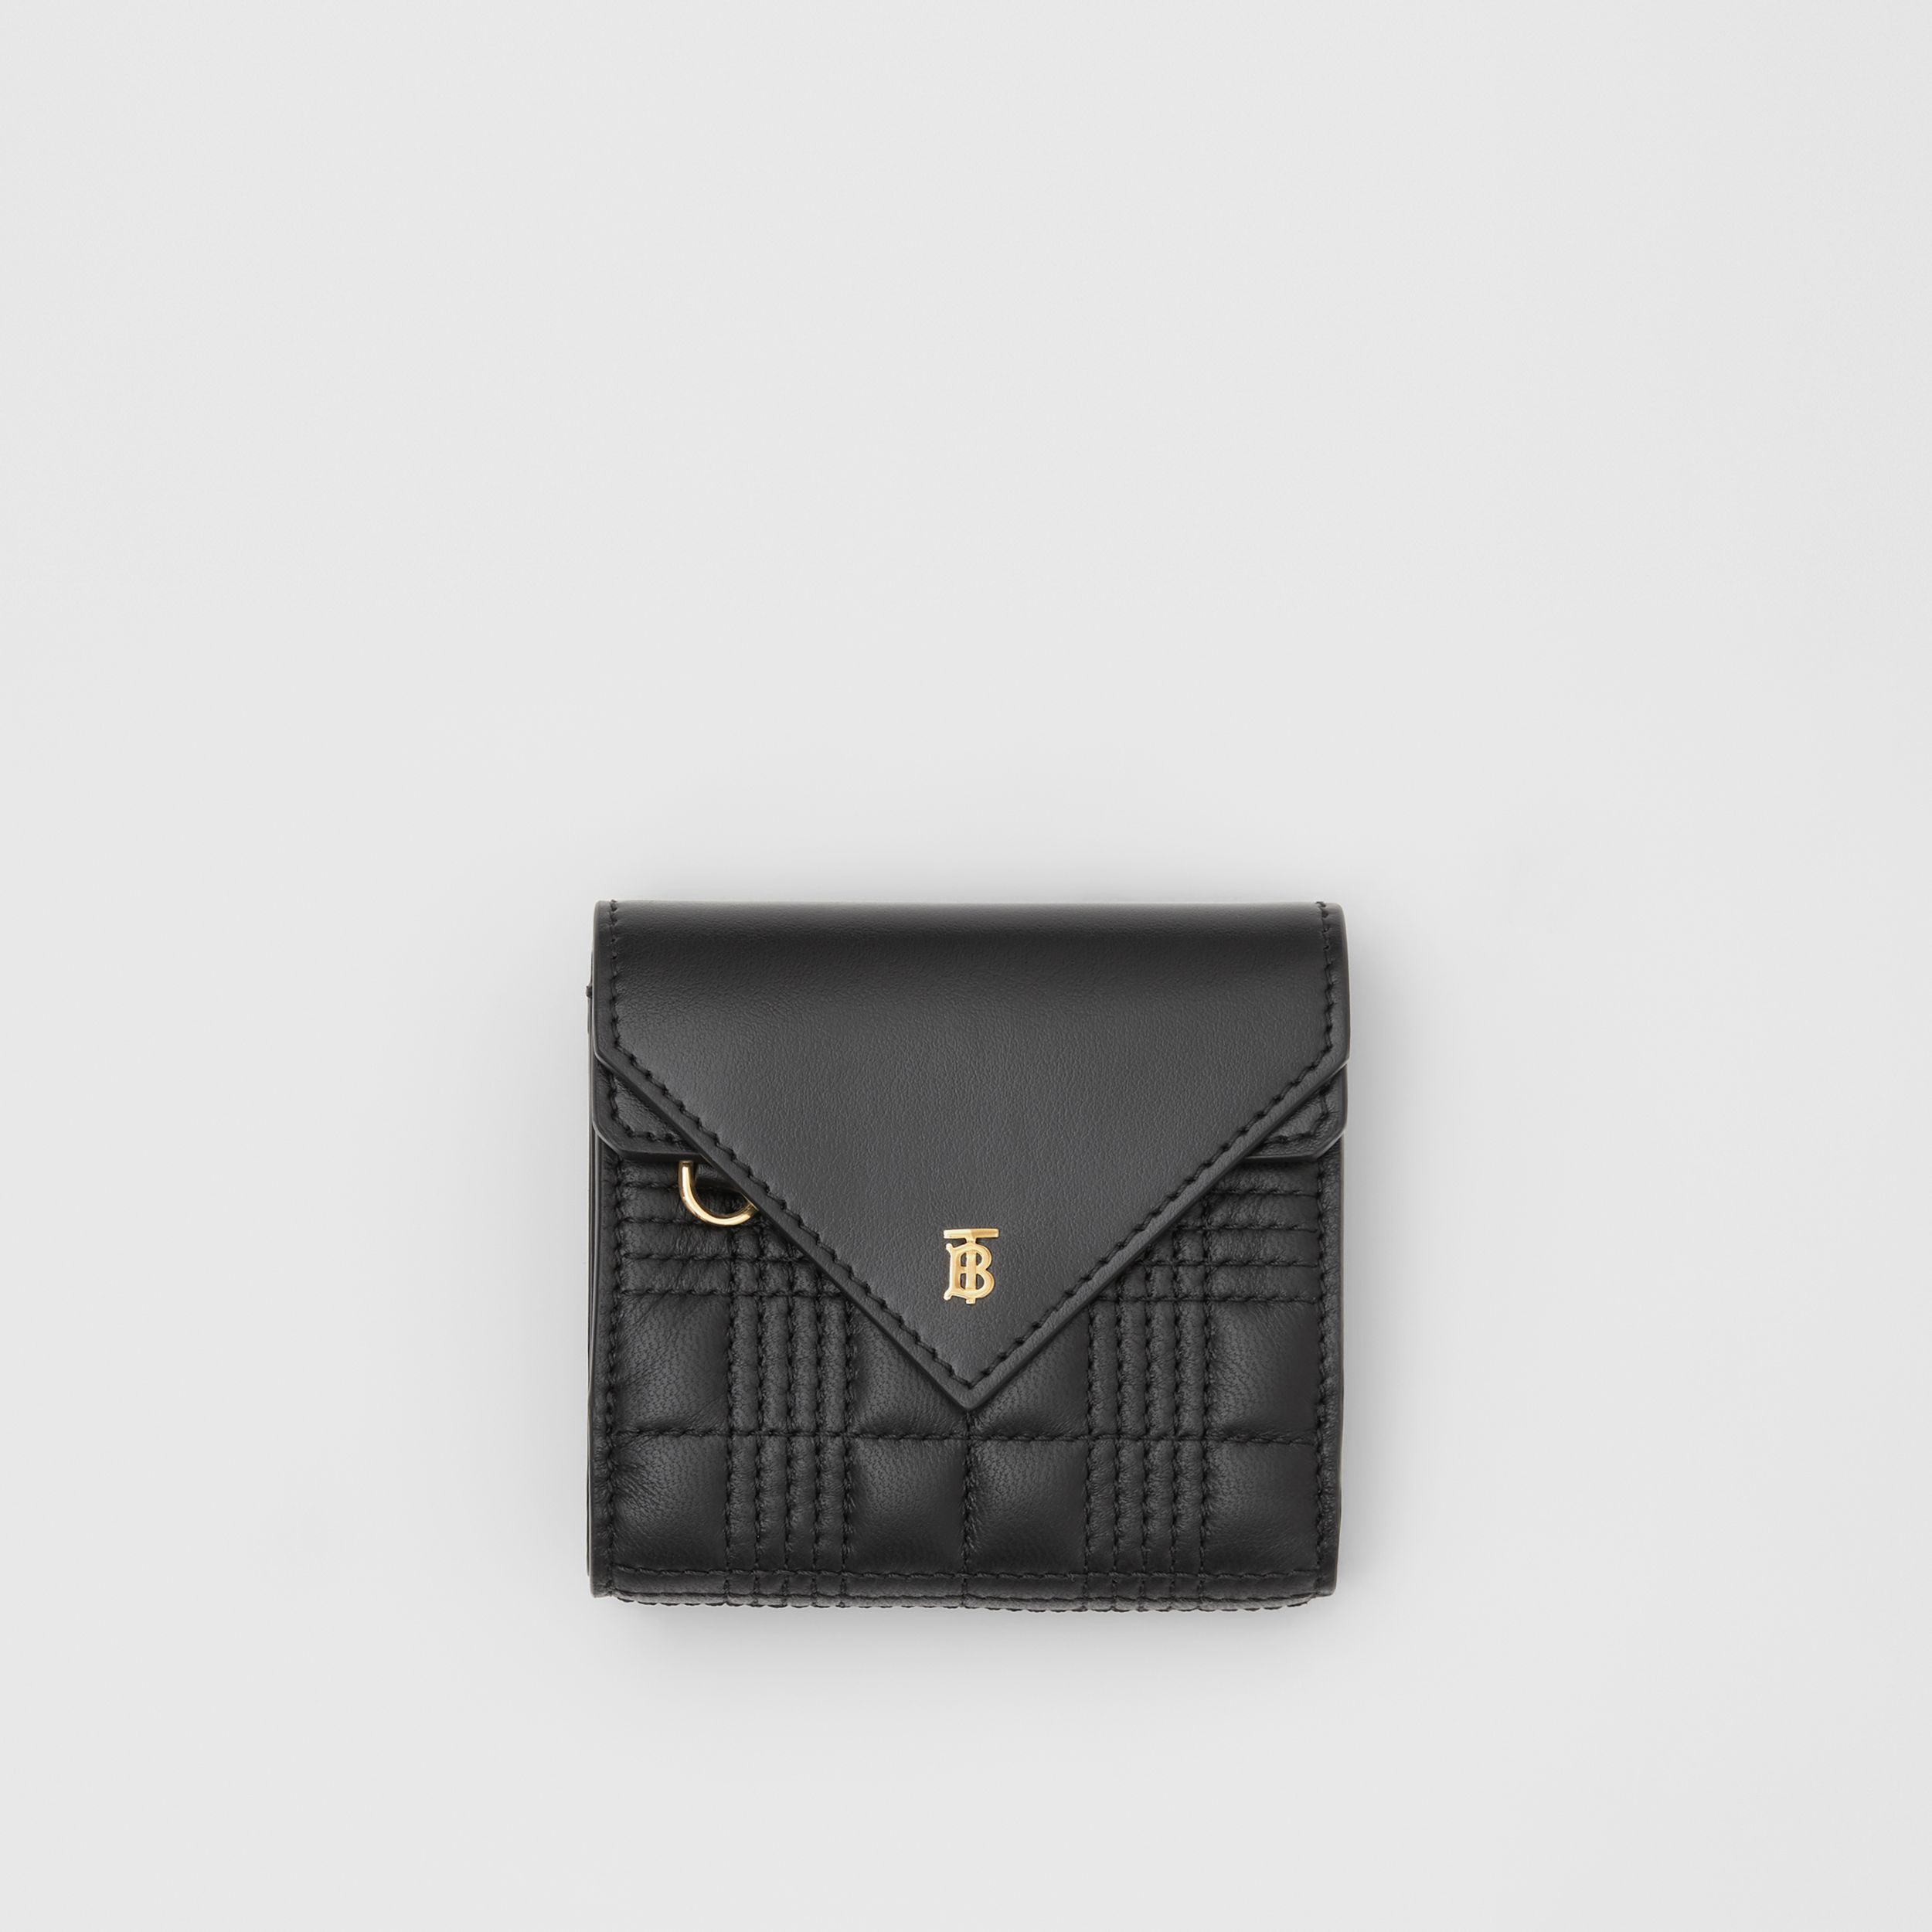 Quilted Lambskin Folding Wallet in Black - Women | Burberry Hong Kong S.A.R. - 1